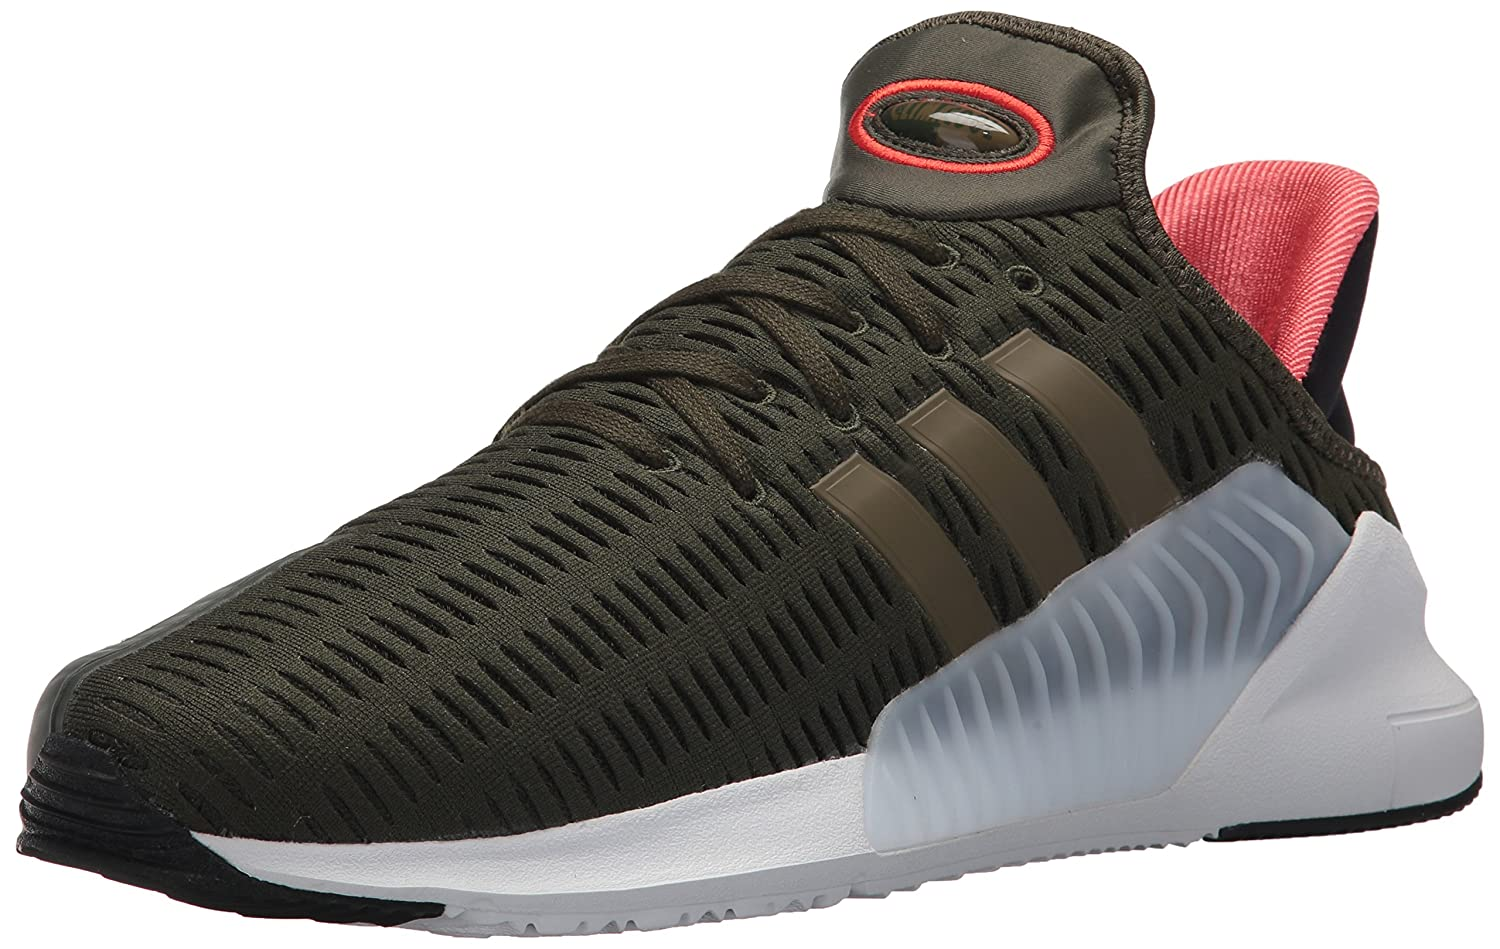 free shipping 79a9e b5d5f Adidas Mens Climacool Originals Running Shoes Night CargoTrace OliveWhite  Wholesale Trade 45S921